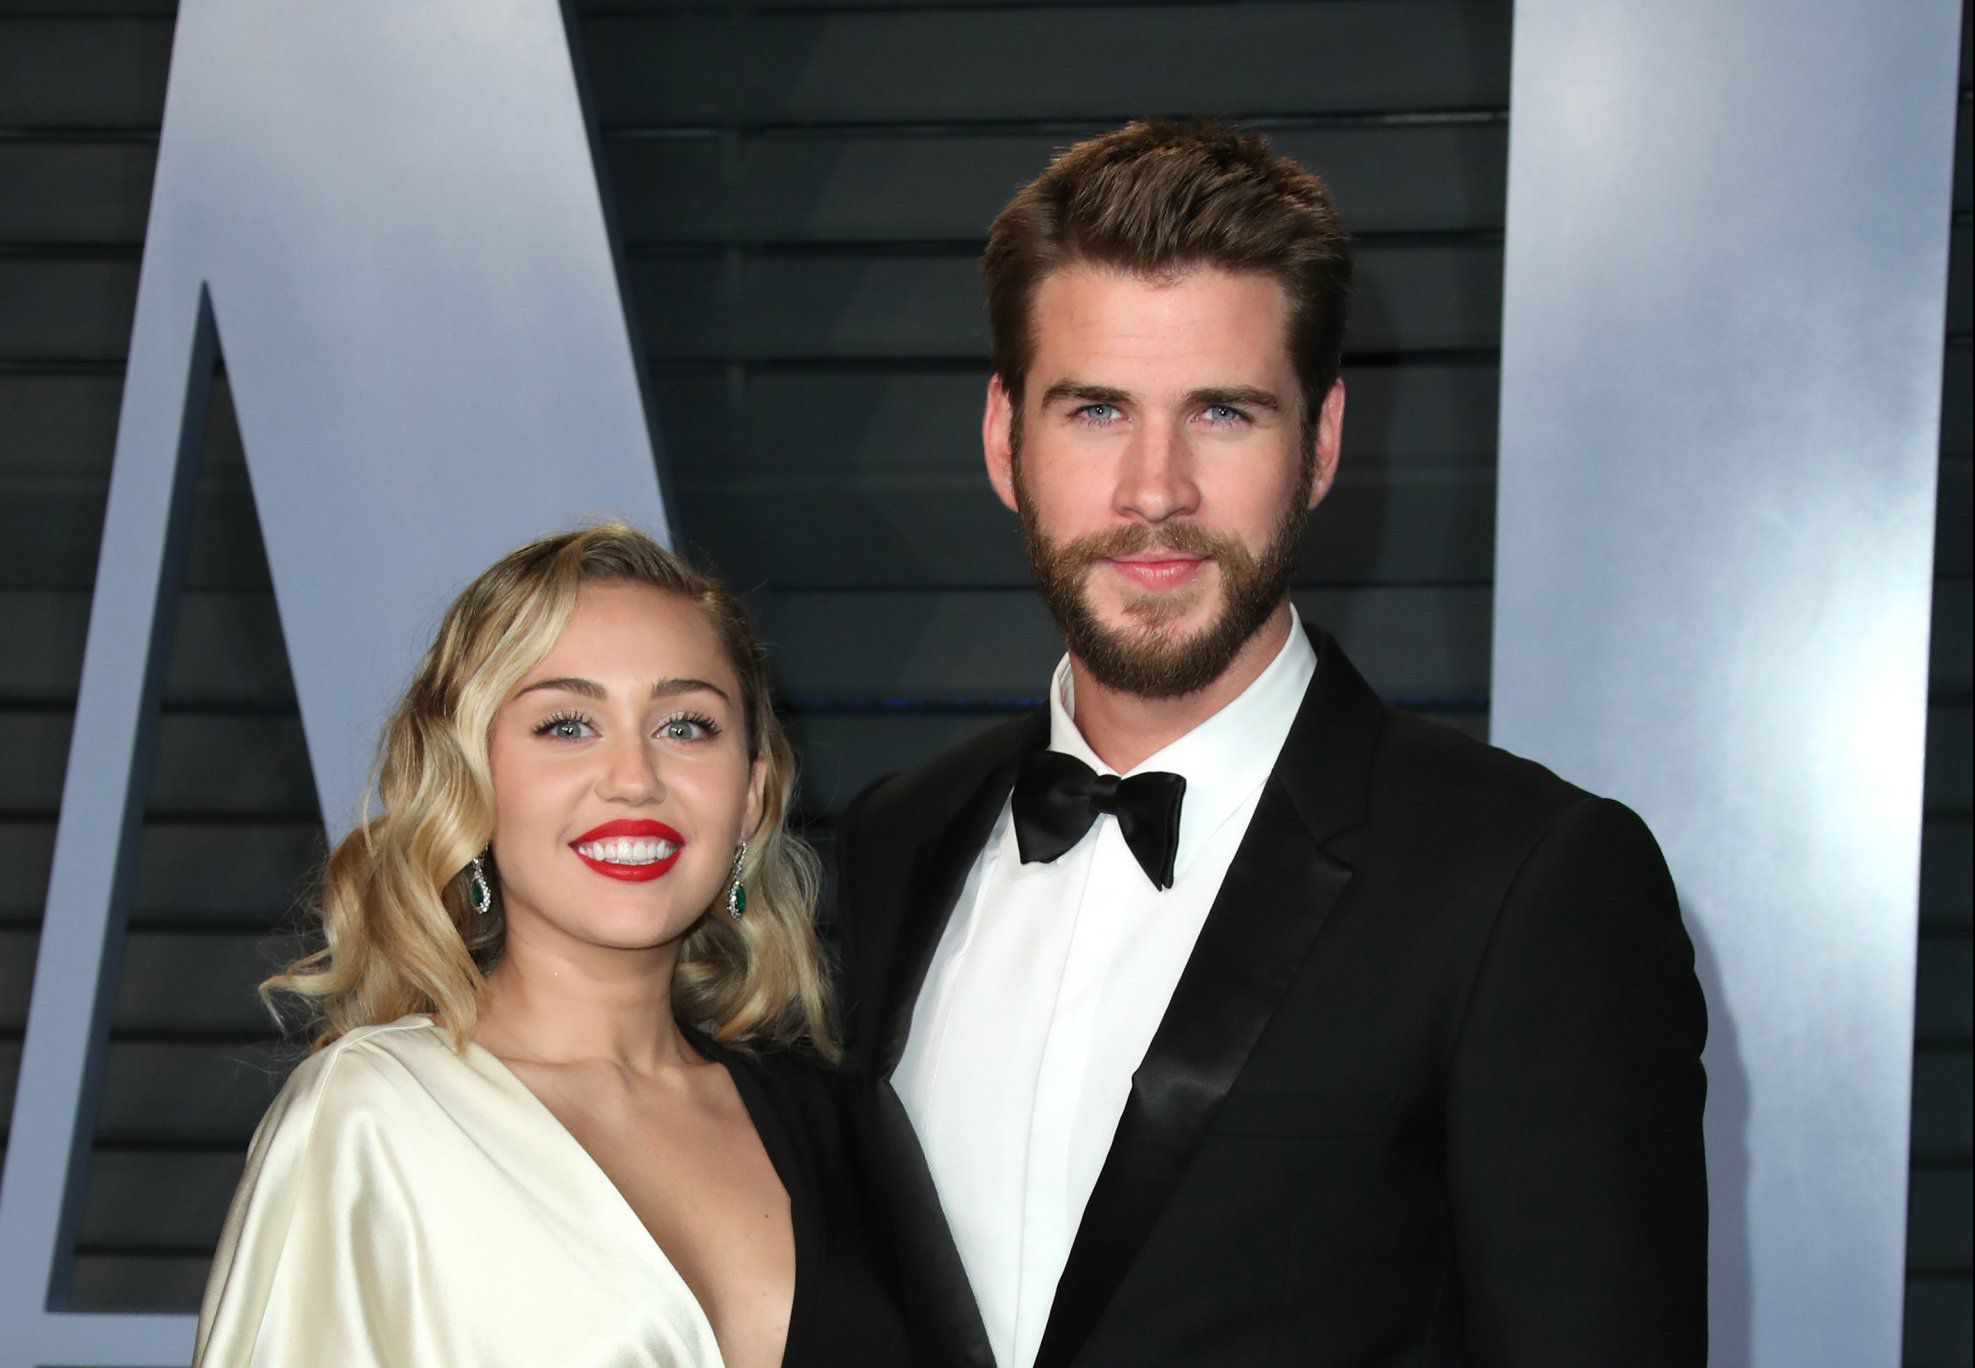 Miley Cyrus and Liam Hemsworth attending the Vanity Fair Oscar Party held in Beverly Hills, Los Angeles, USA